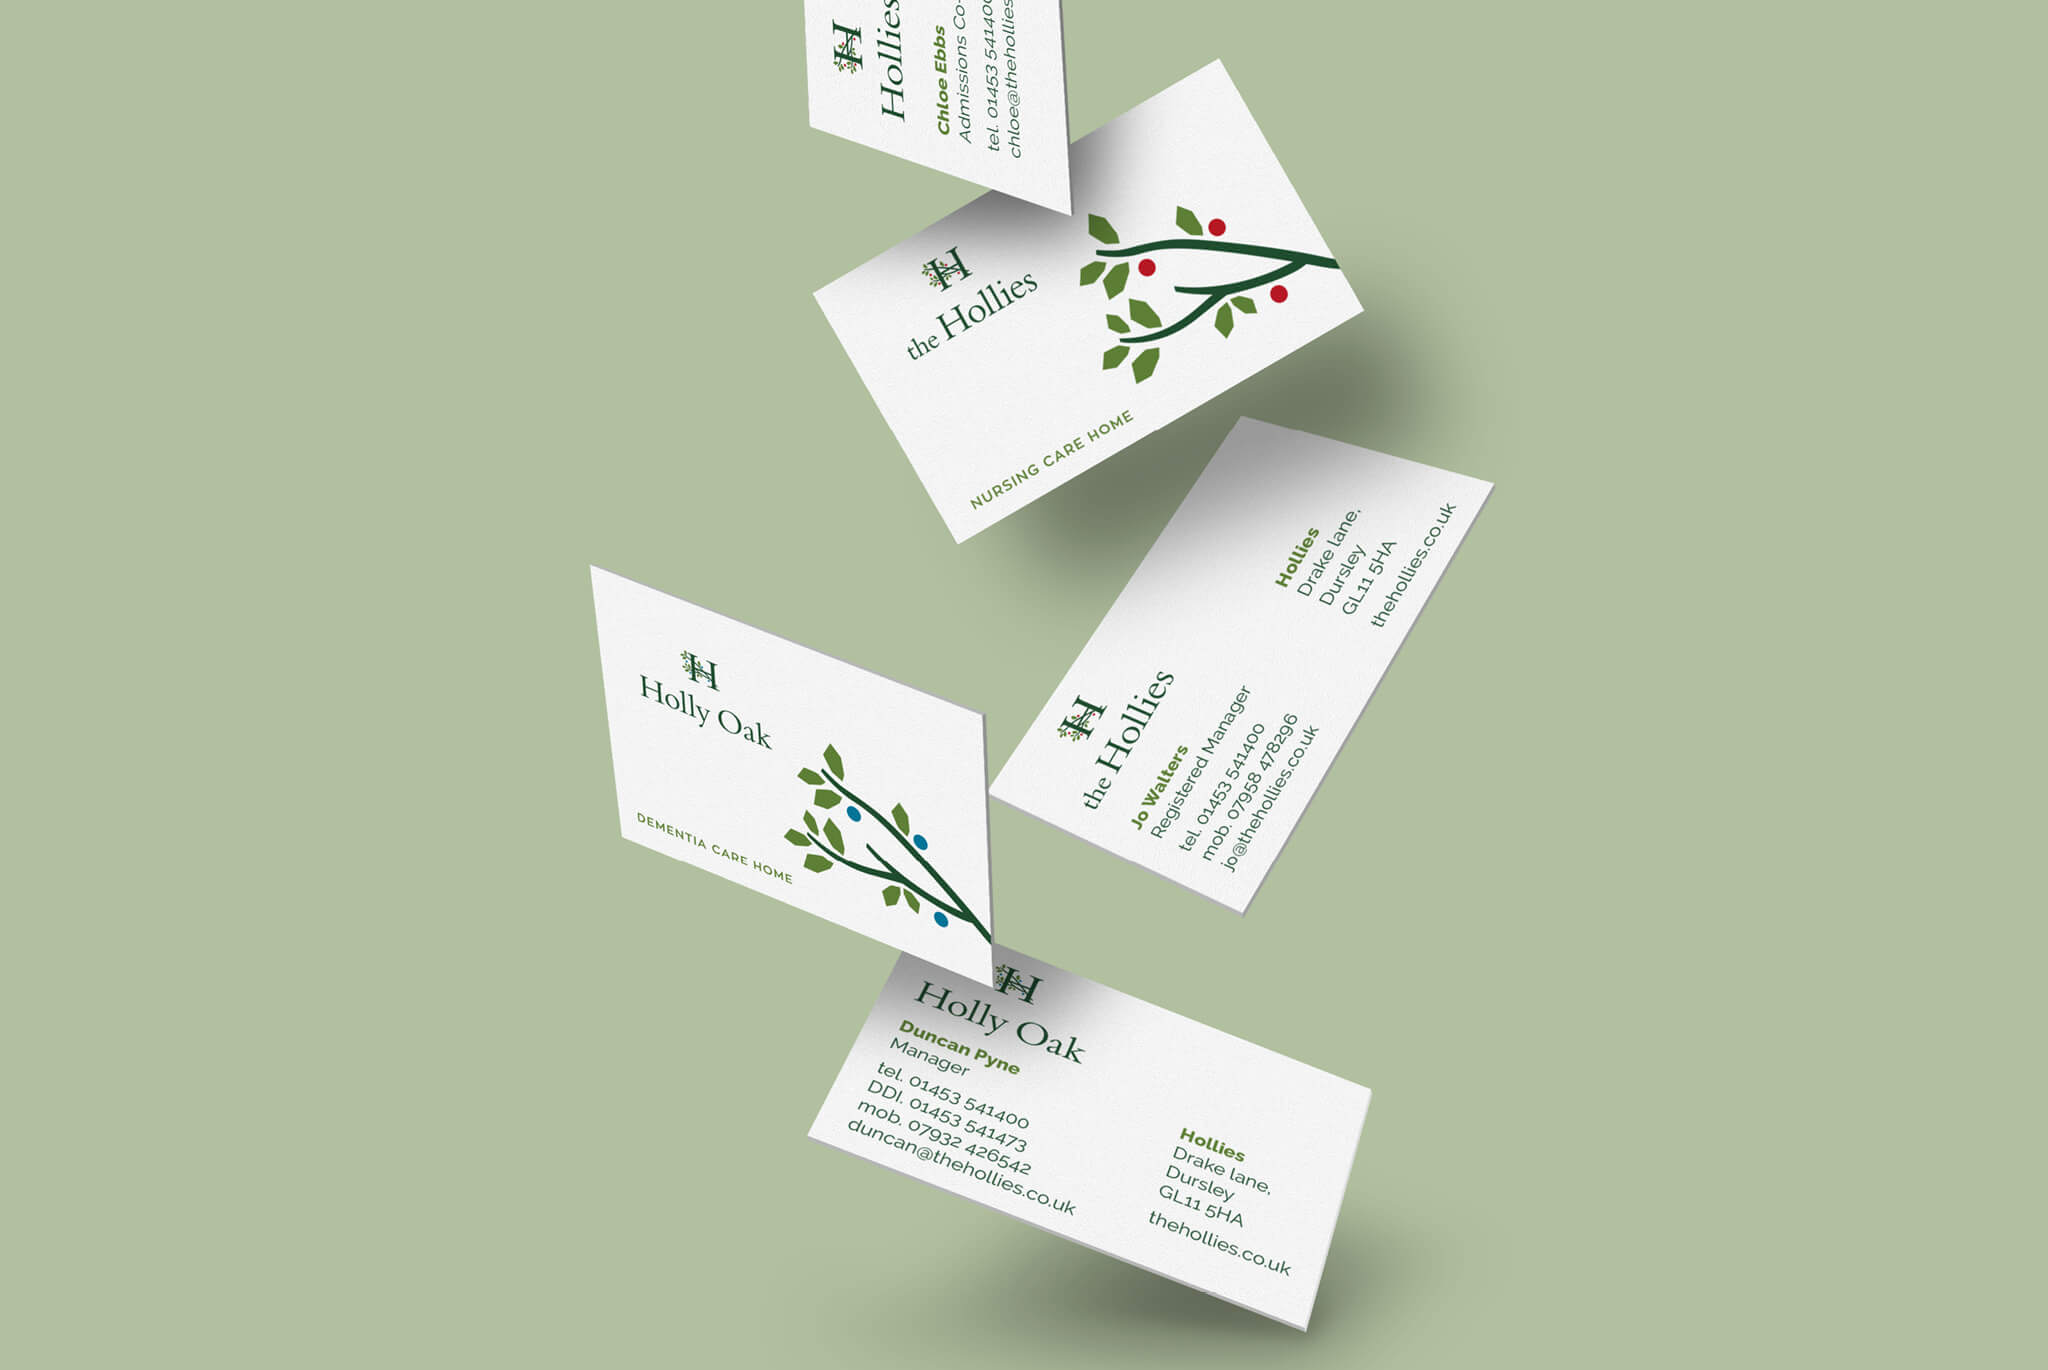 Hollies Business Cards